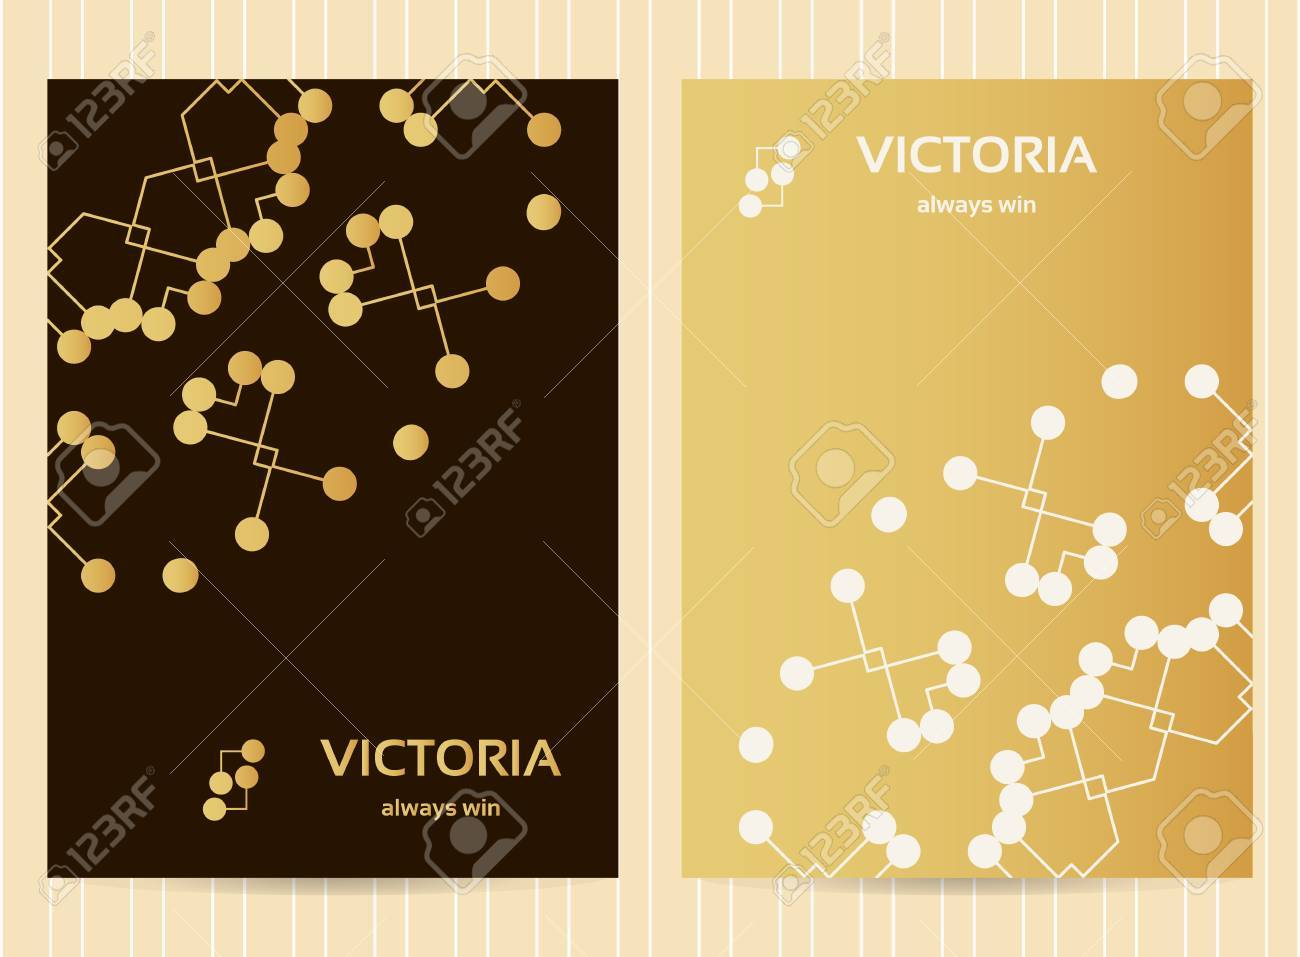 5x7 inch size cards in golden color with lines and dots  Vector